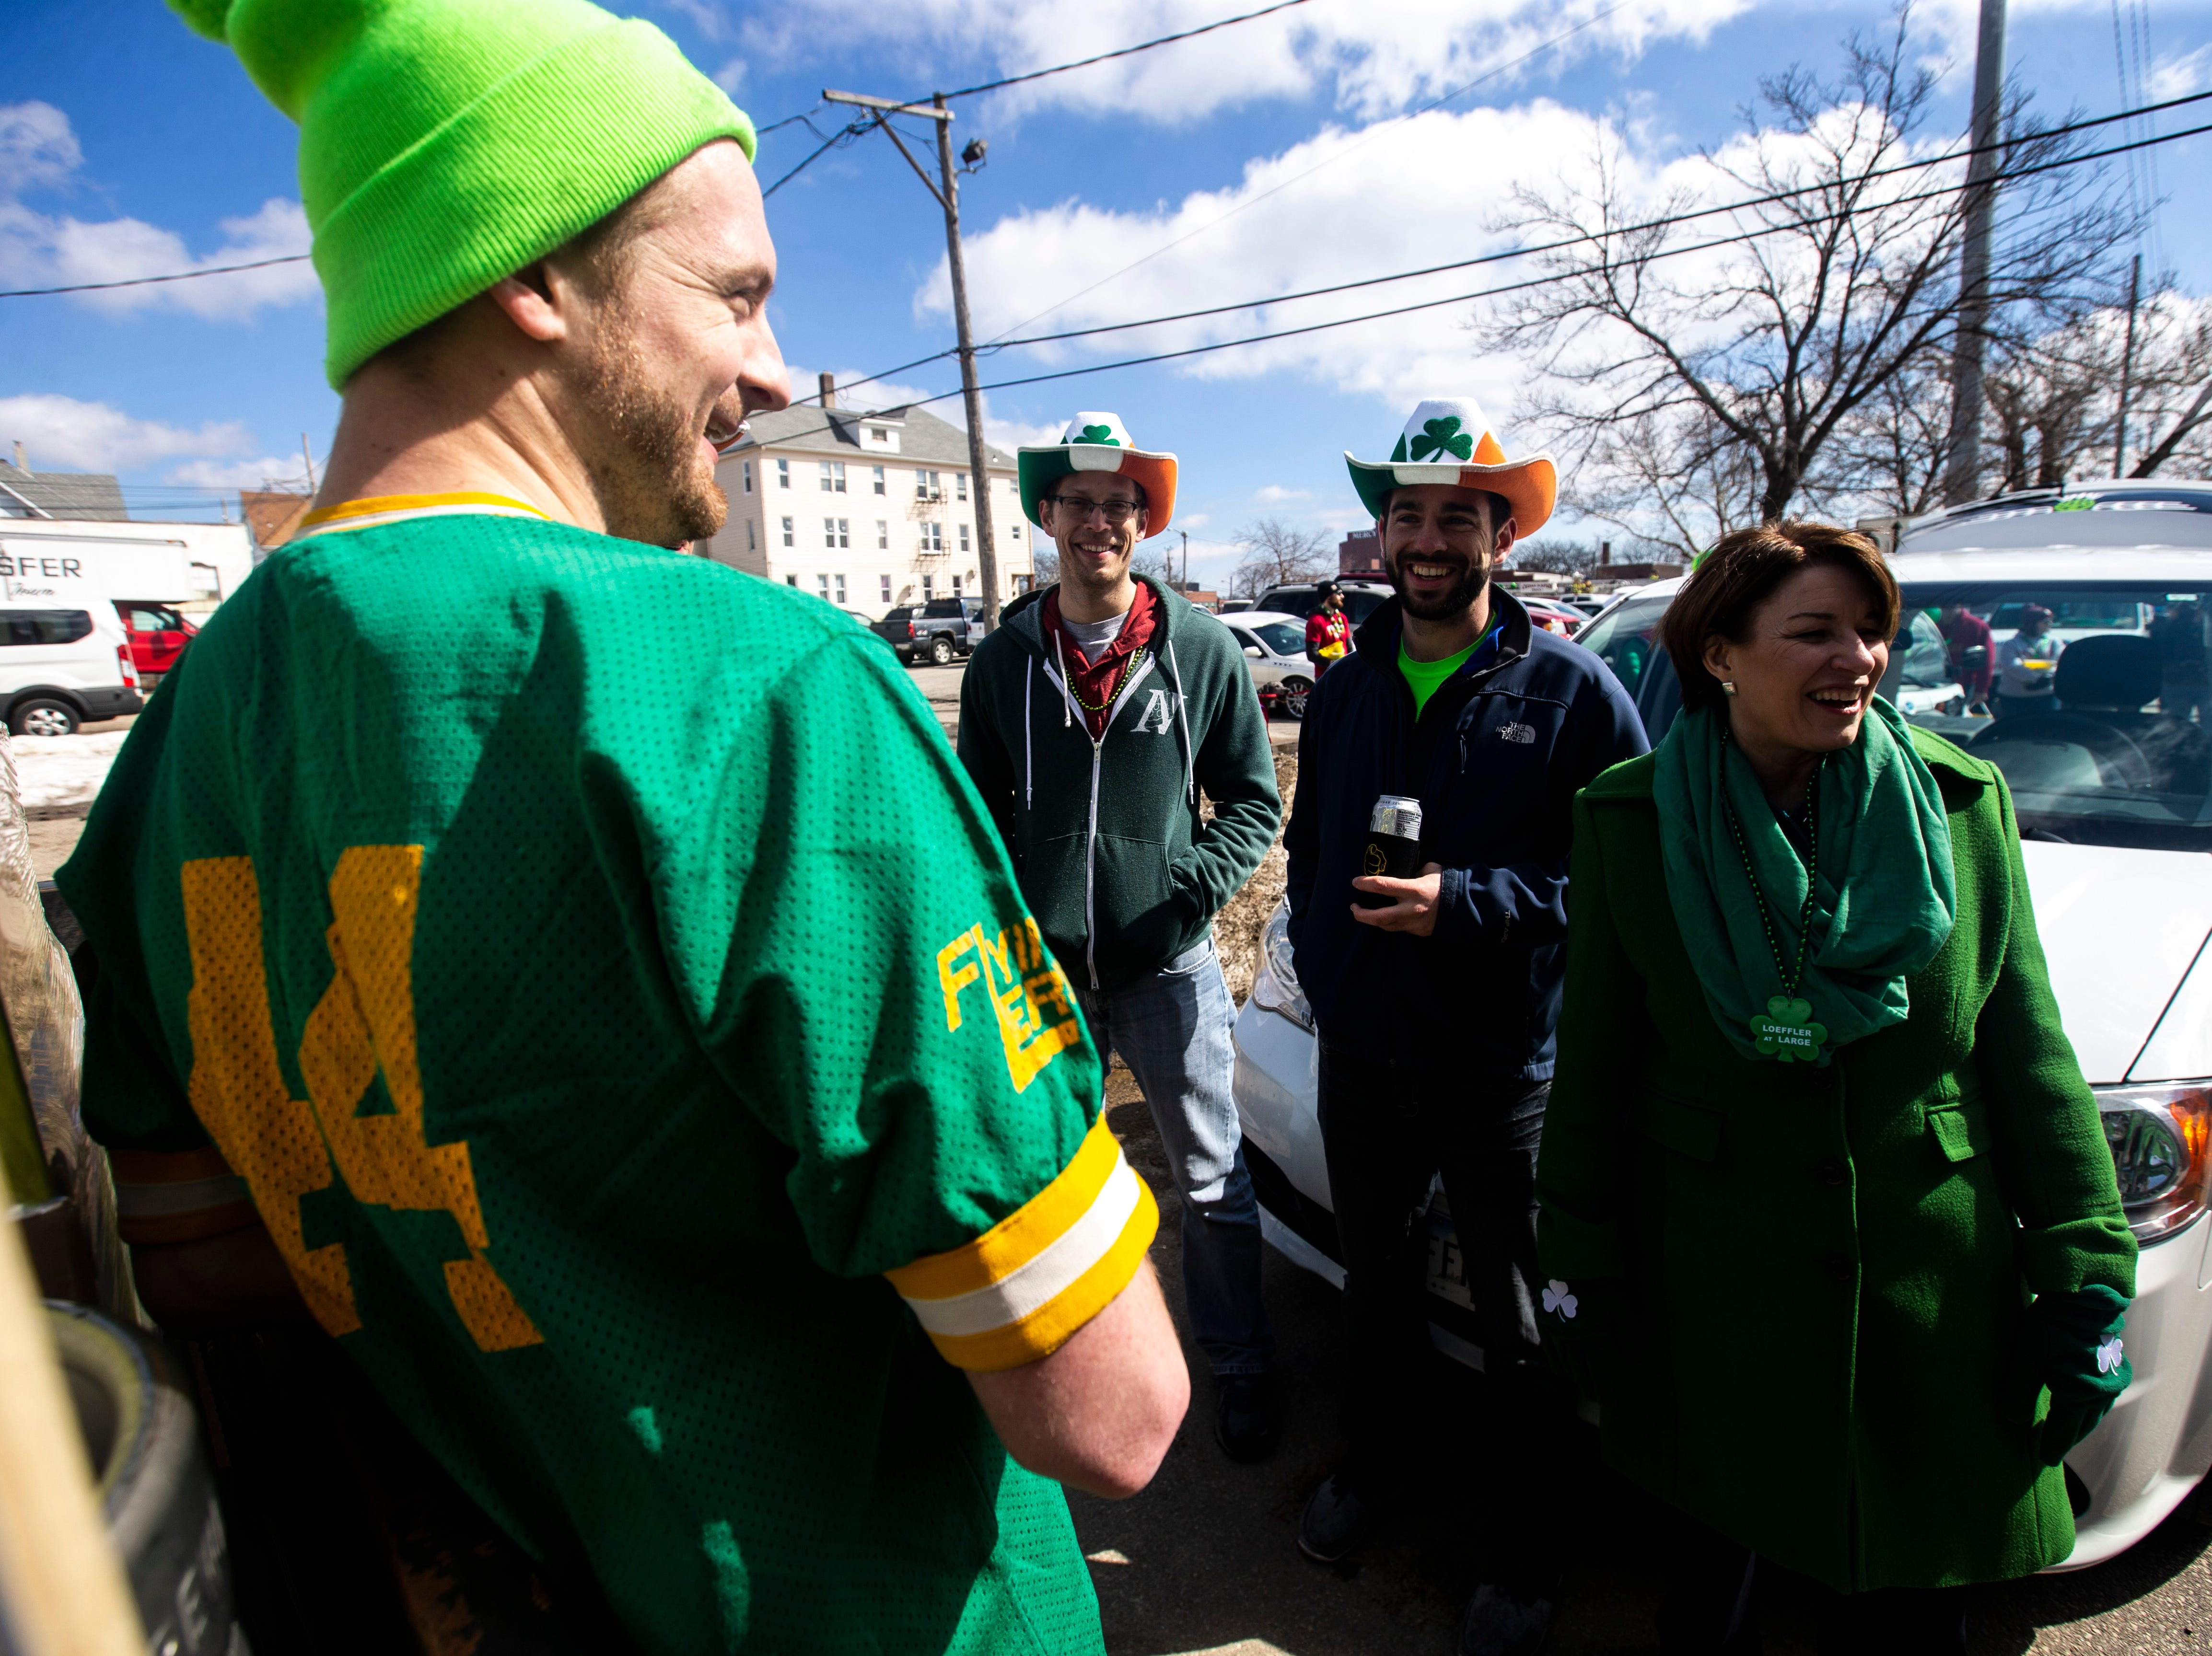 U.S. Sen. Amy Klobuchar, D-Minn., talks with employees from Iowa Brewing Co. in the staging area before walking in the Saint Patrick's Day Parade Society (SaPaDaPaSo) parade on Sunday, March 17, 2019, in downtown Cedar Rapids, Iowa.